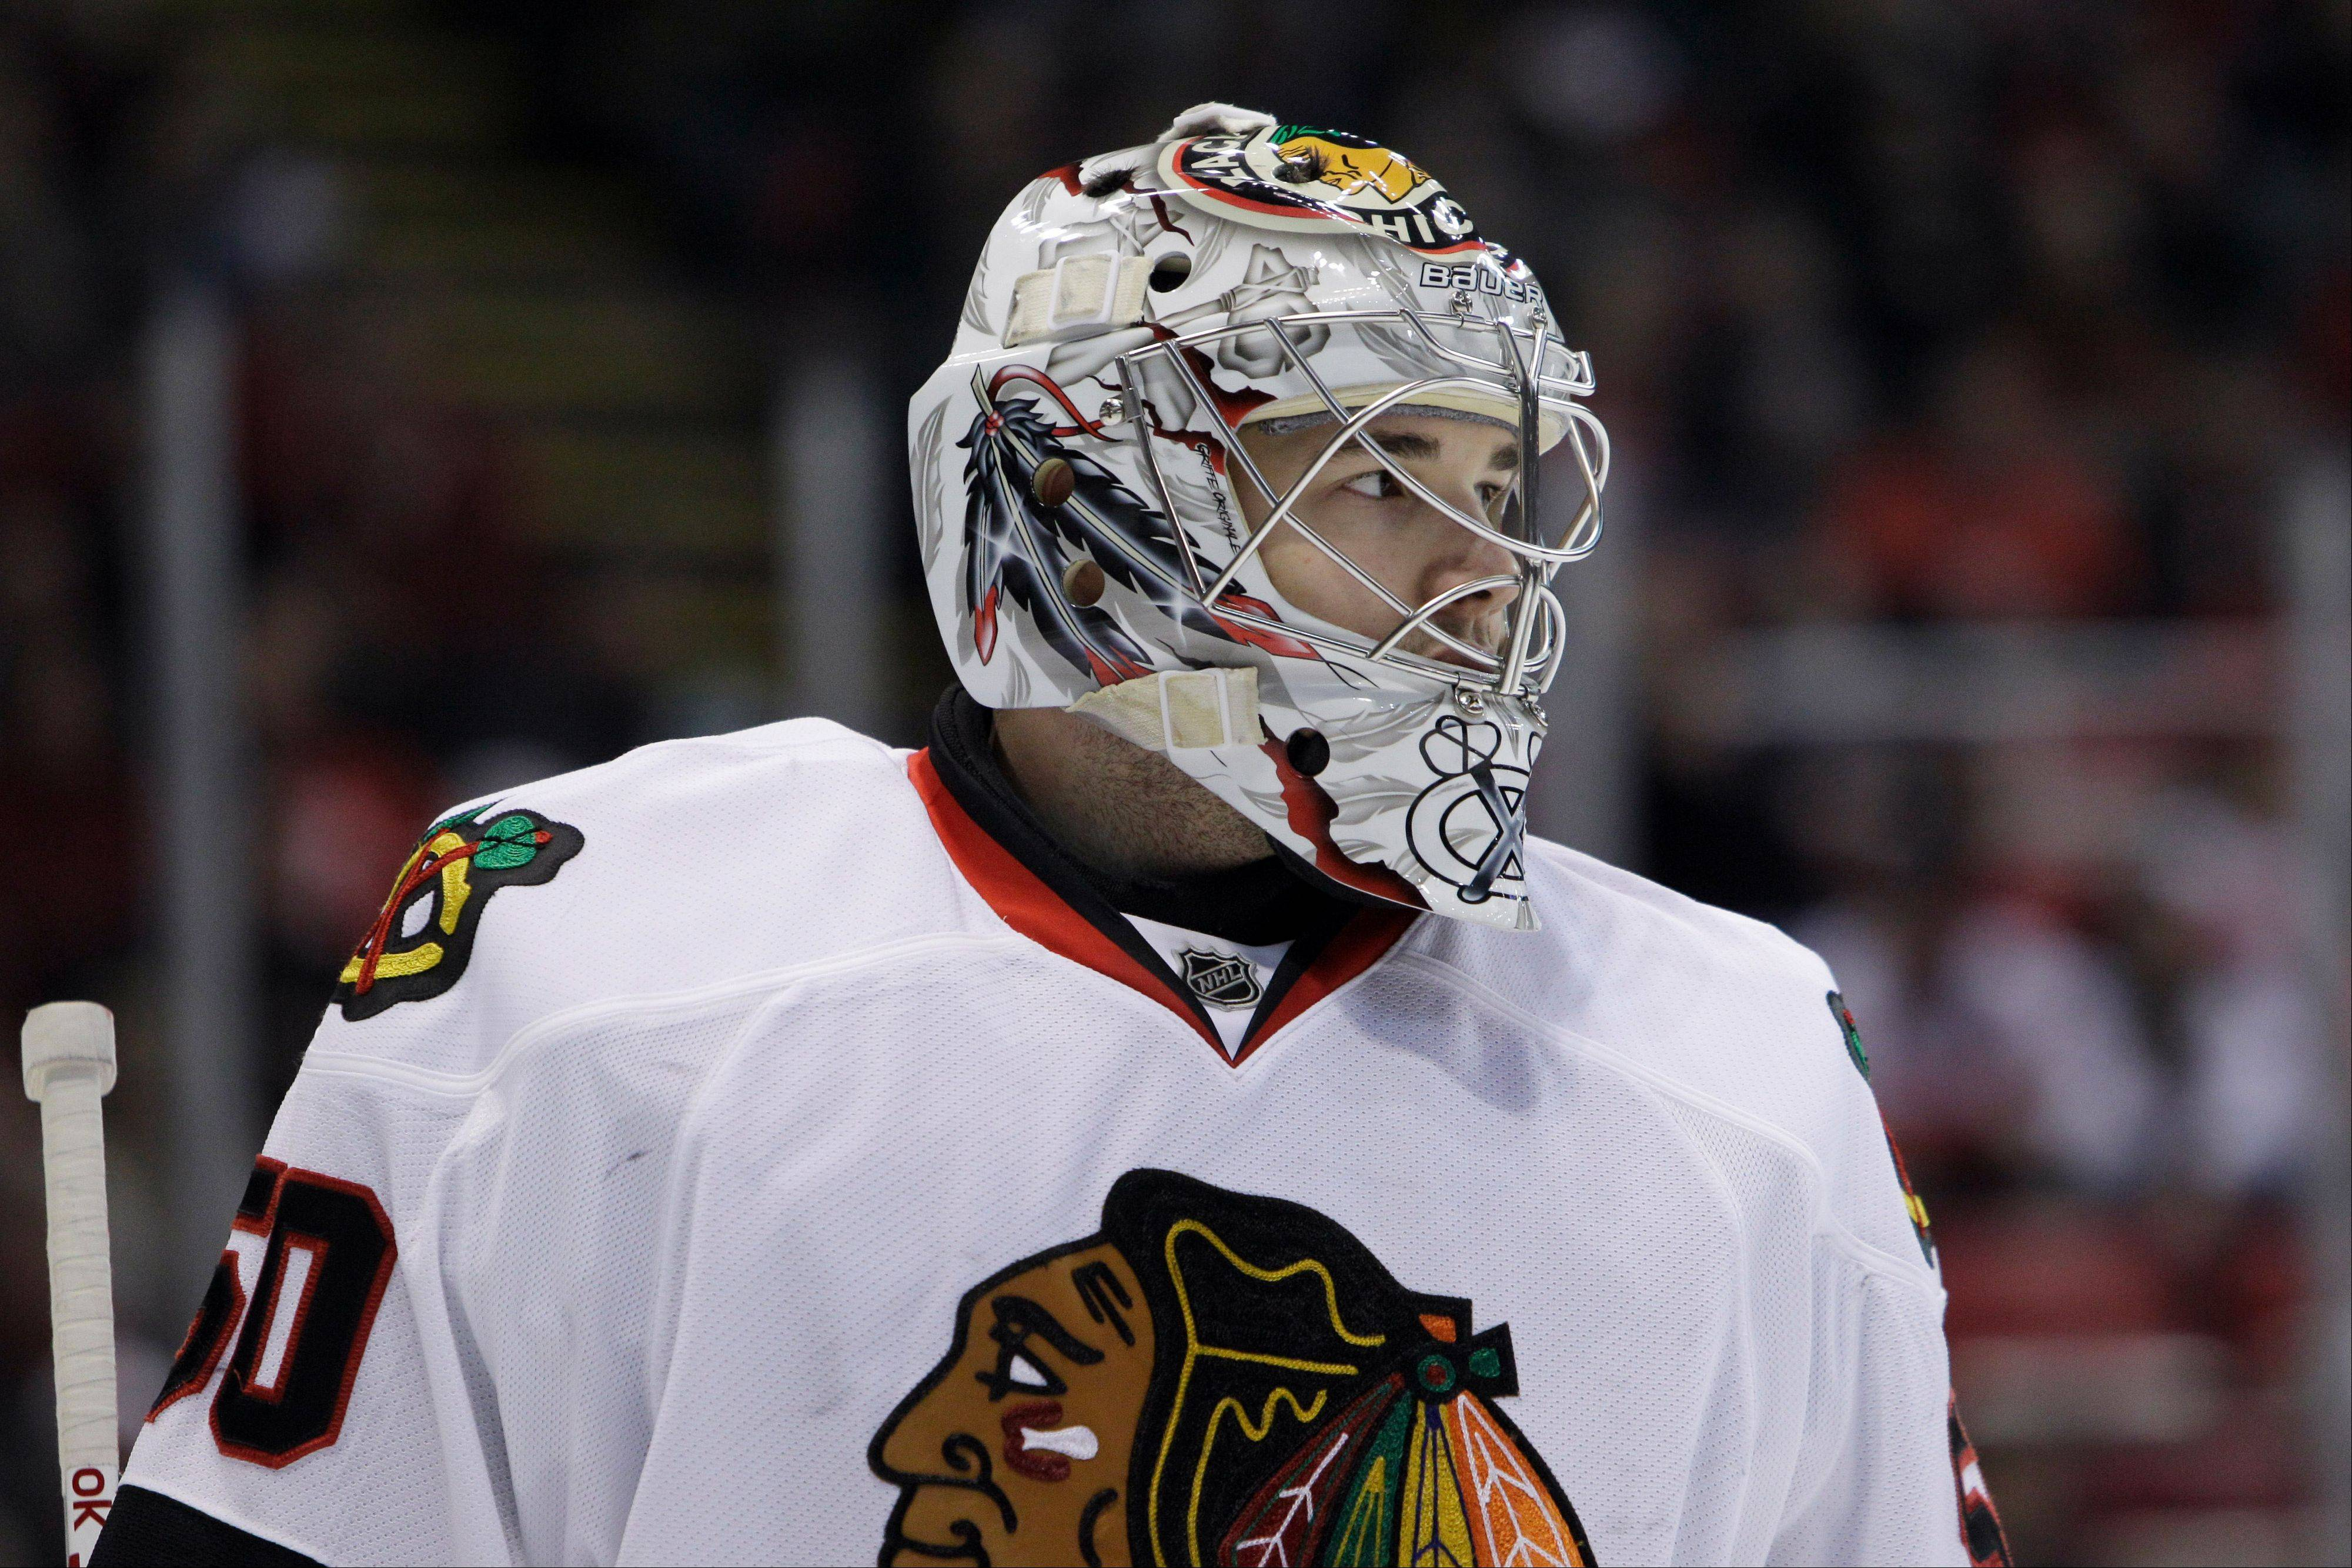 Although he won 30 games last season for the Blackhawks, goalie Corey Crawford says he�s focusing on providing more consistency this season.